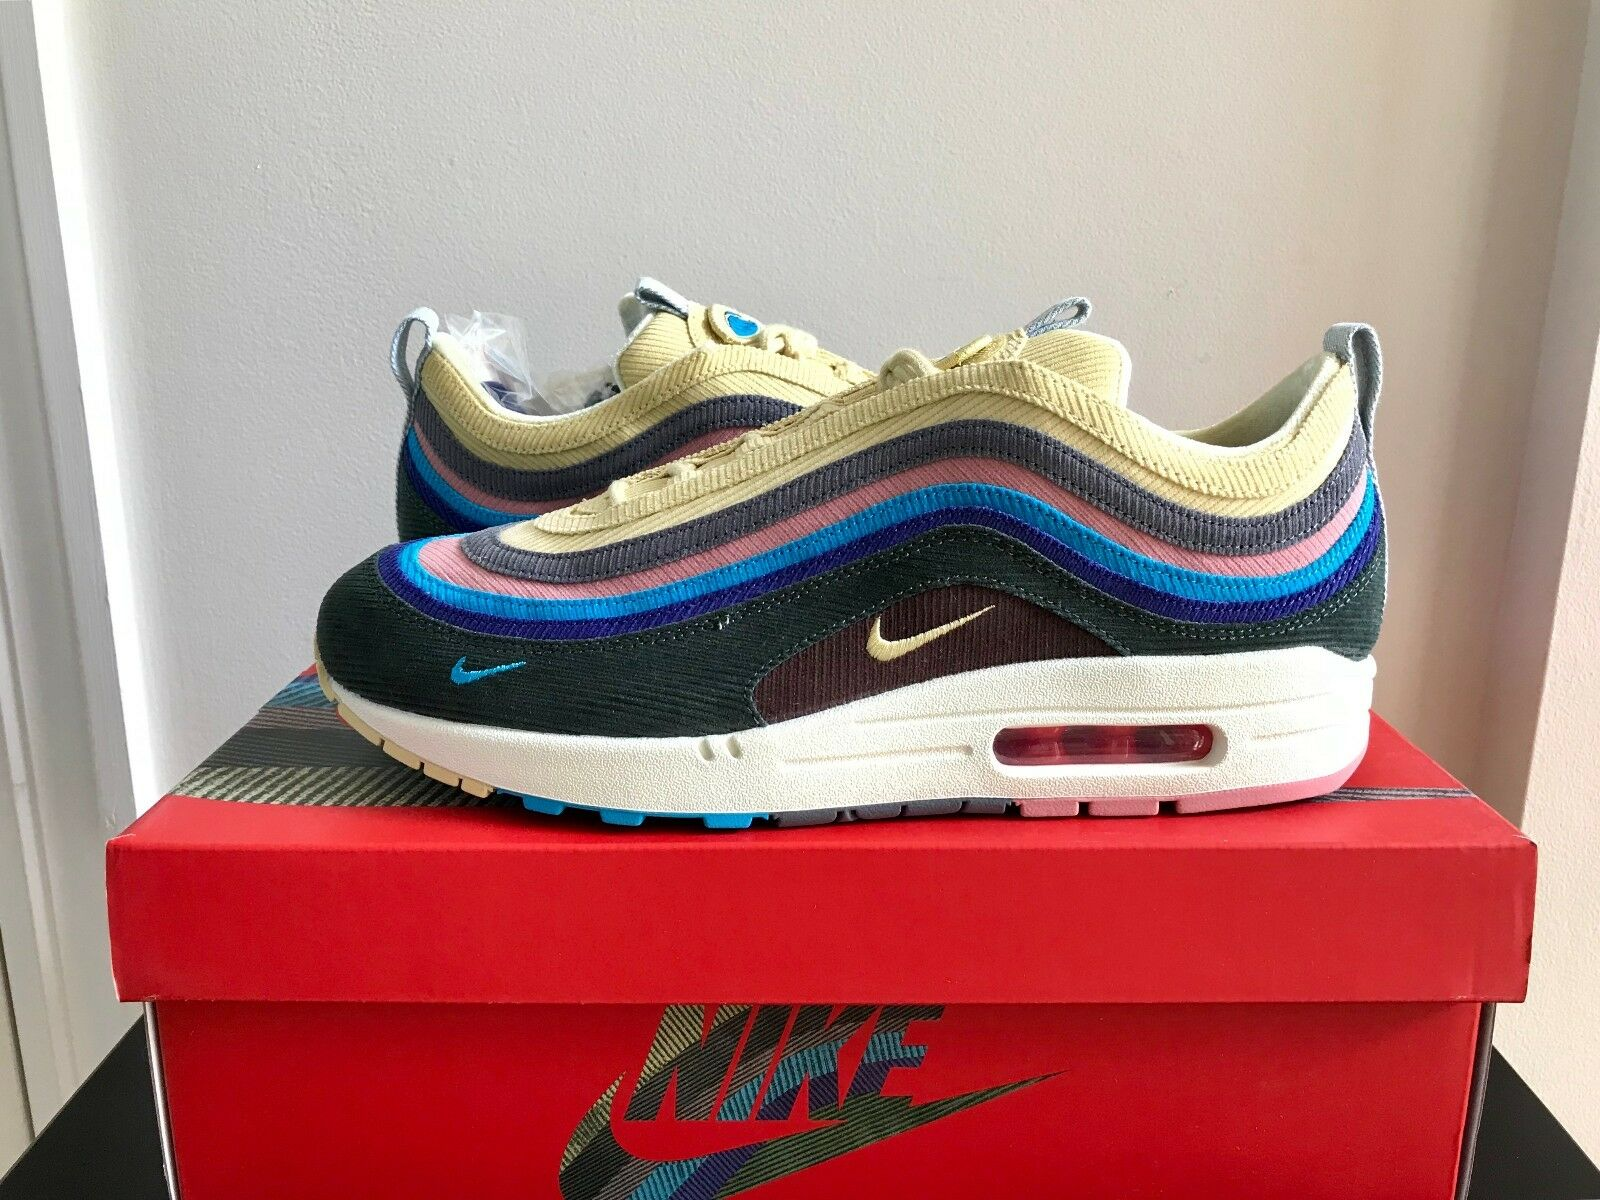 DS BRAND NEW NIKE AIR MAX 1/97 VF SW SEAN WOTHERSPOON QS AJ4219-400 2018